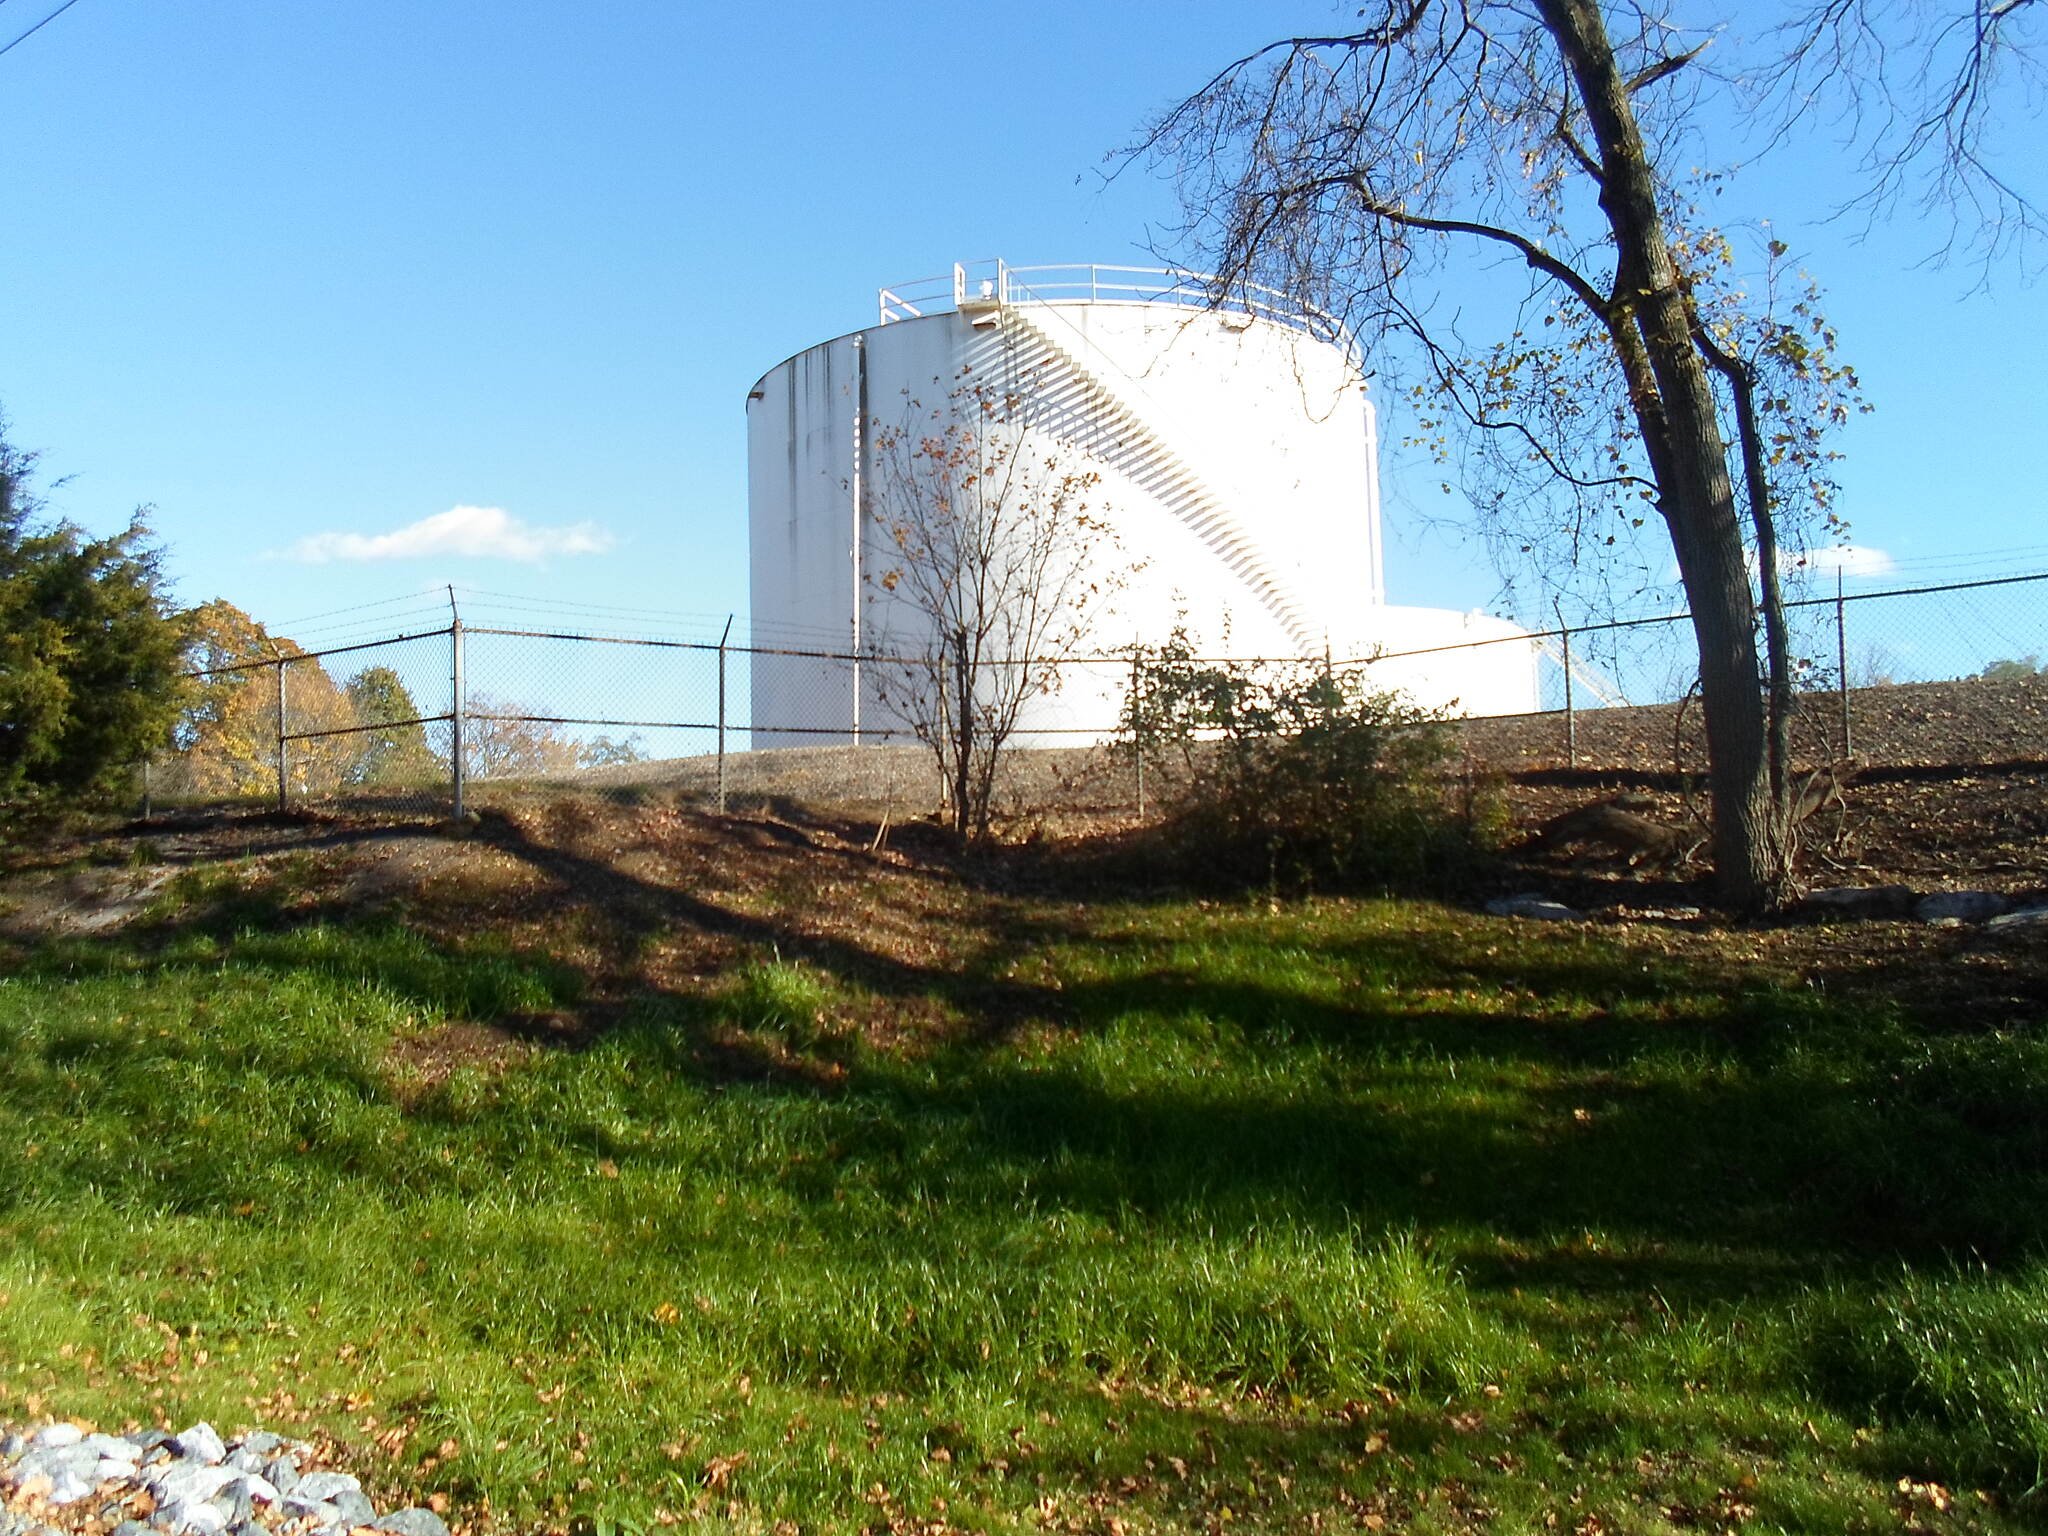 Chester Valley Trail Chester Valley Trail The trail passes by these fuel tanks just west of Ship Road. Taken Oct. 2014.